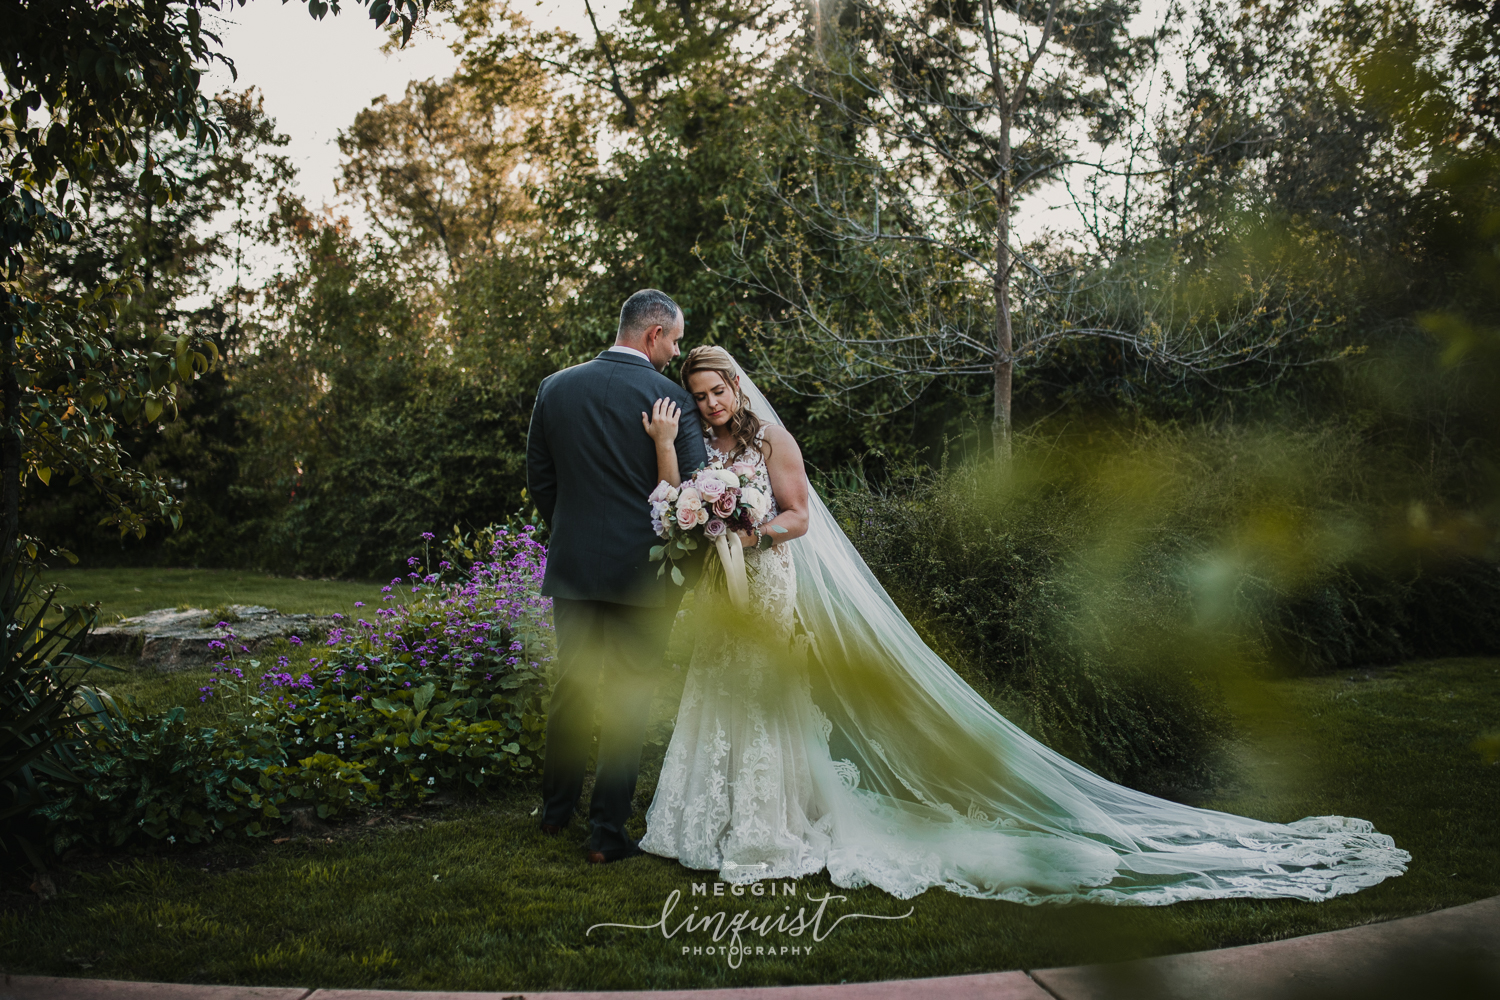 classic-spring-wedding-the-flower-farm-inn-northern-california-wedding-photographer-62.jpg